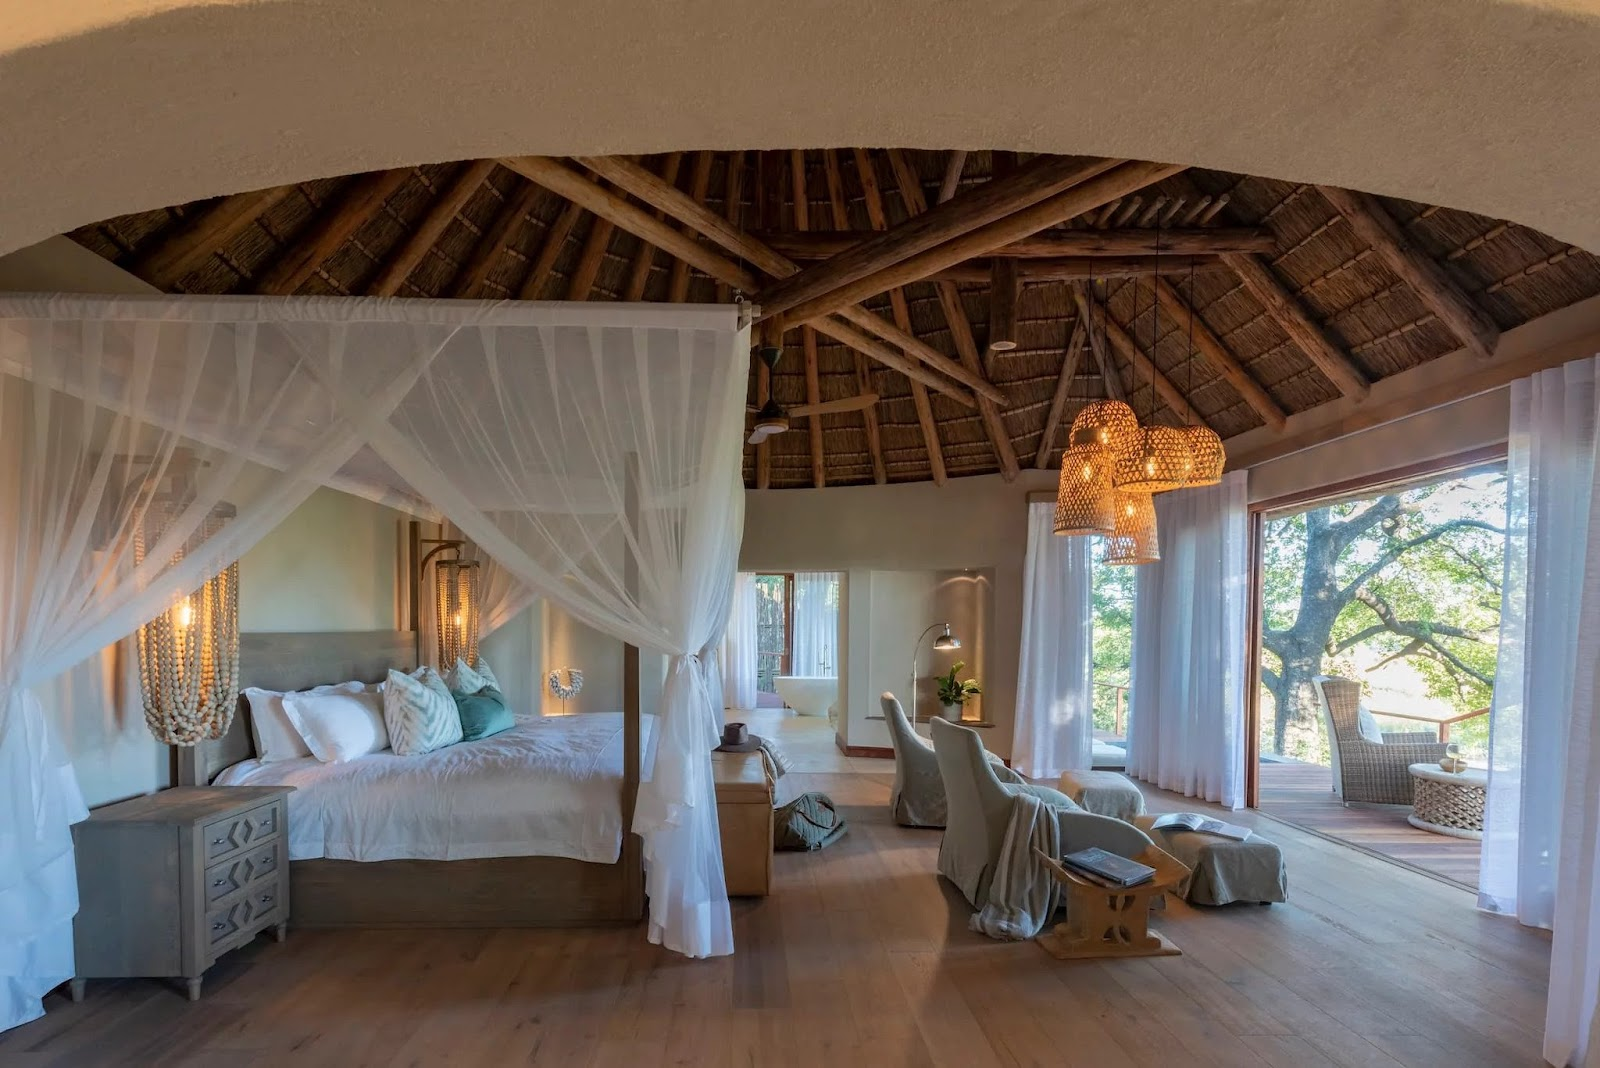 Interior room of Dulini River Lodge offers the perfect honeymoon safari lodge